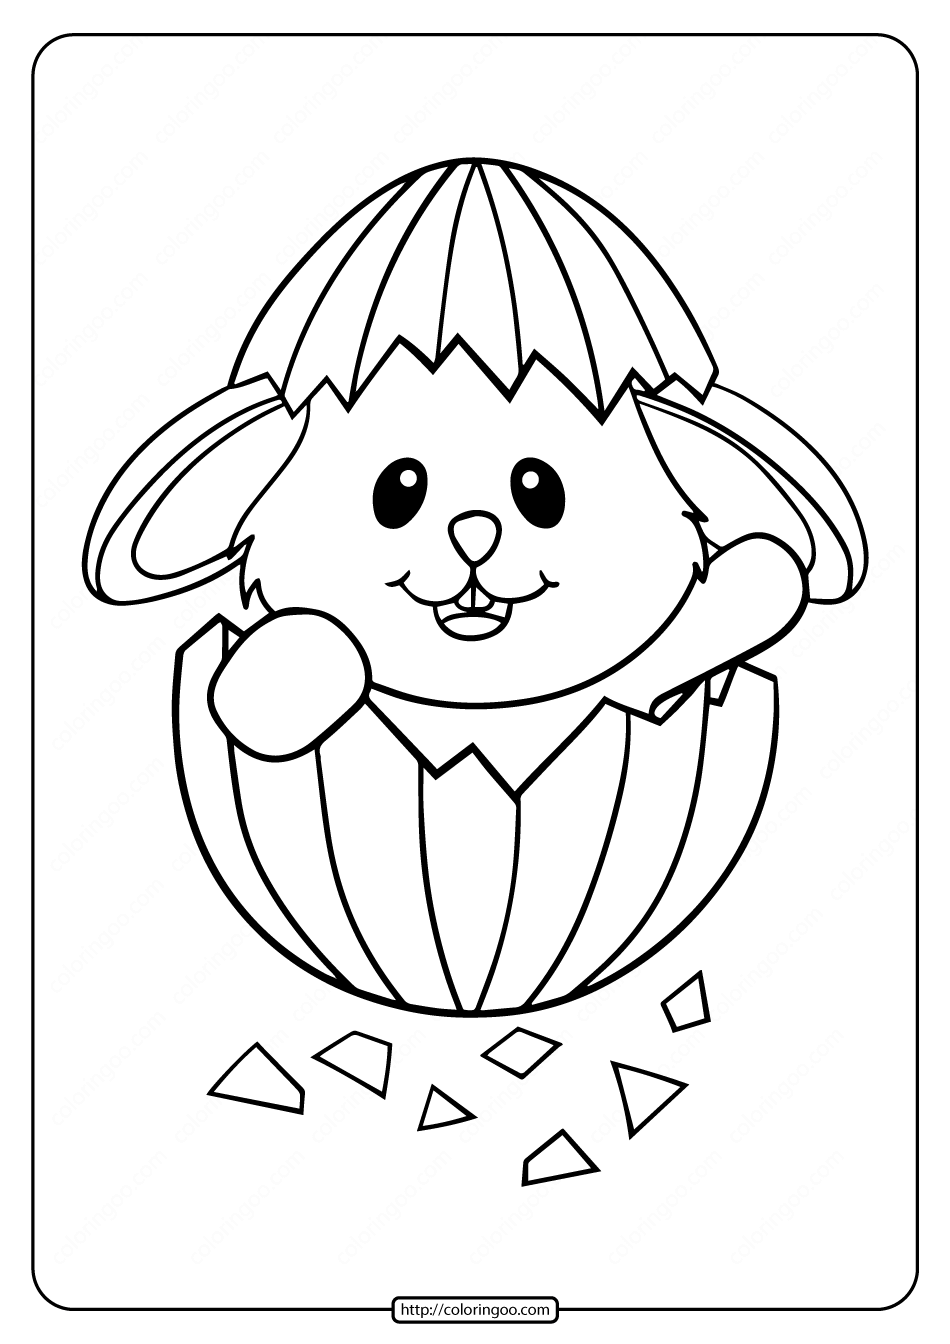 cute bunny coloring pages cute coloring pages team colors pages cute coloring bunny